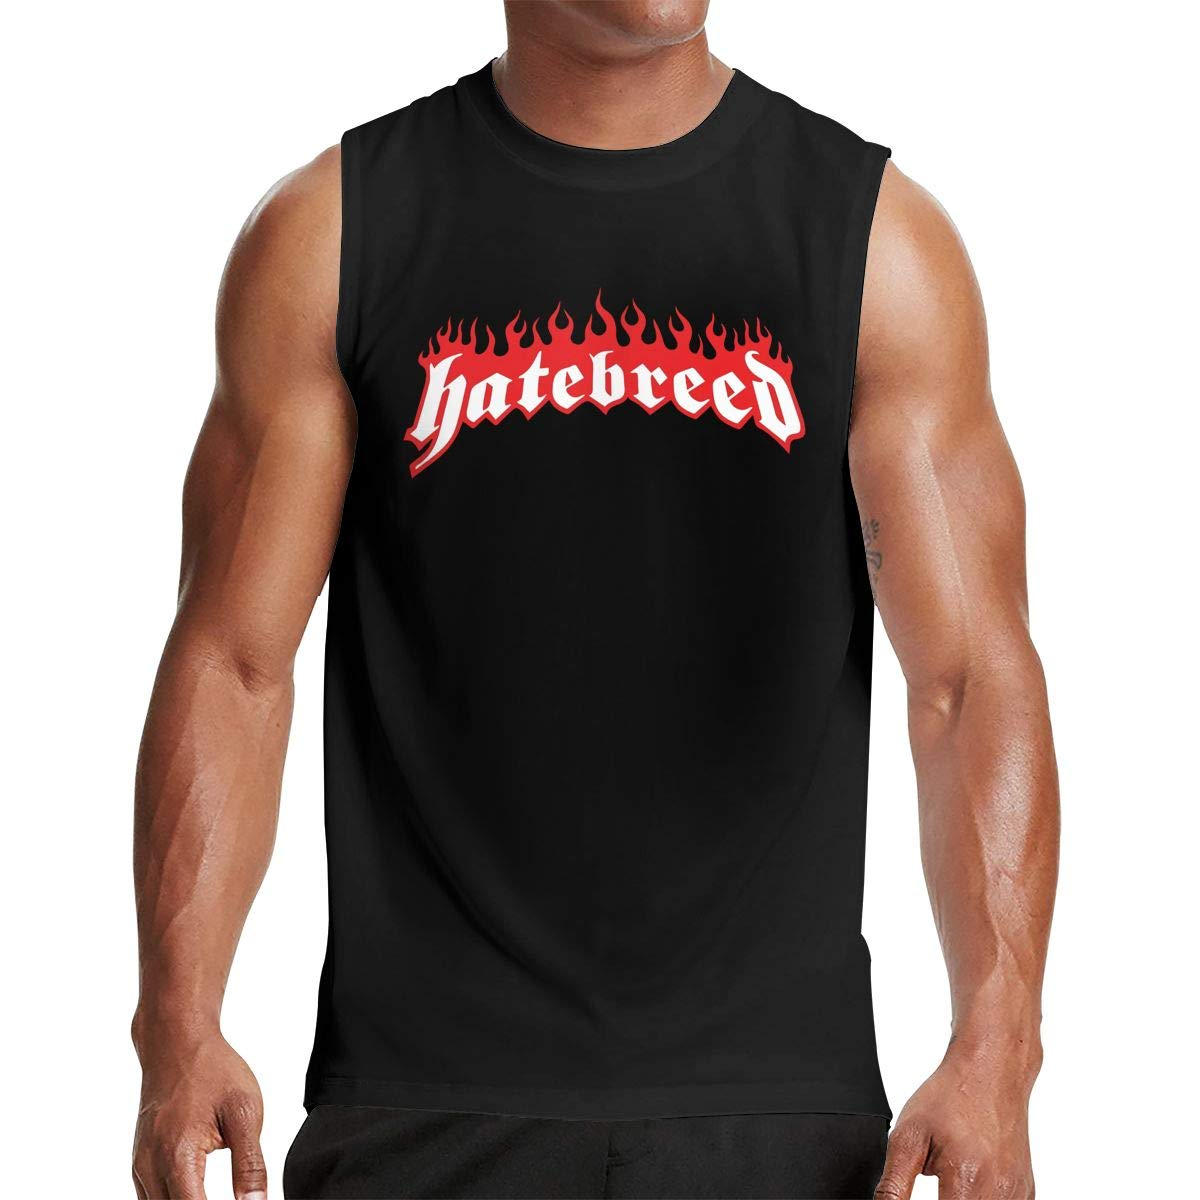 Thomlarryca Particular Hatebreed S Gym Muscle T Shirt Classic Athletic Sleeveless T Sh